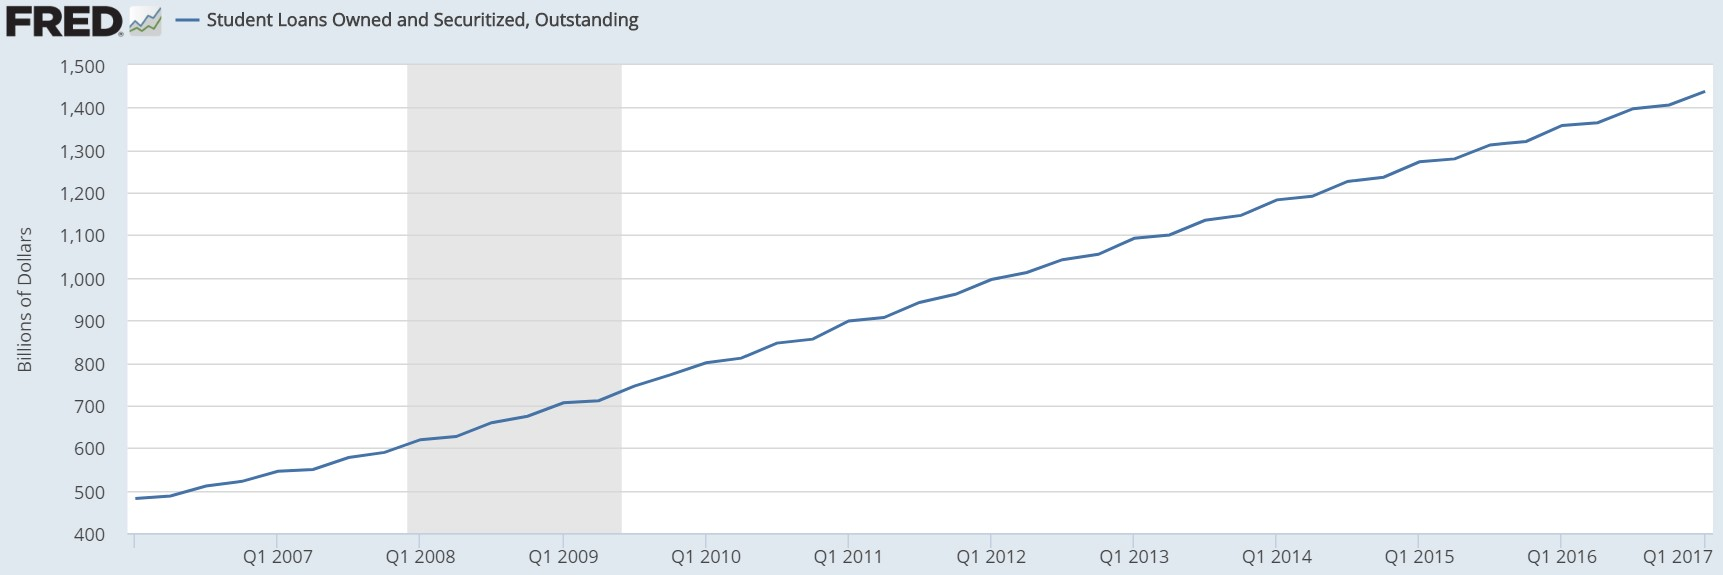 Student Loan Debt Outstanding